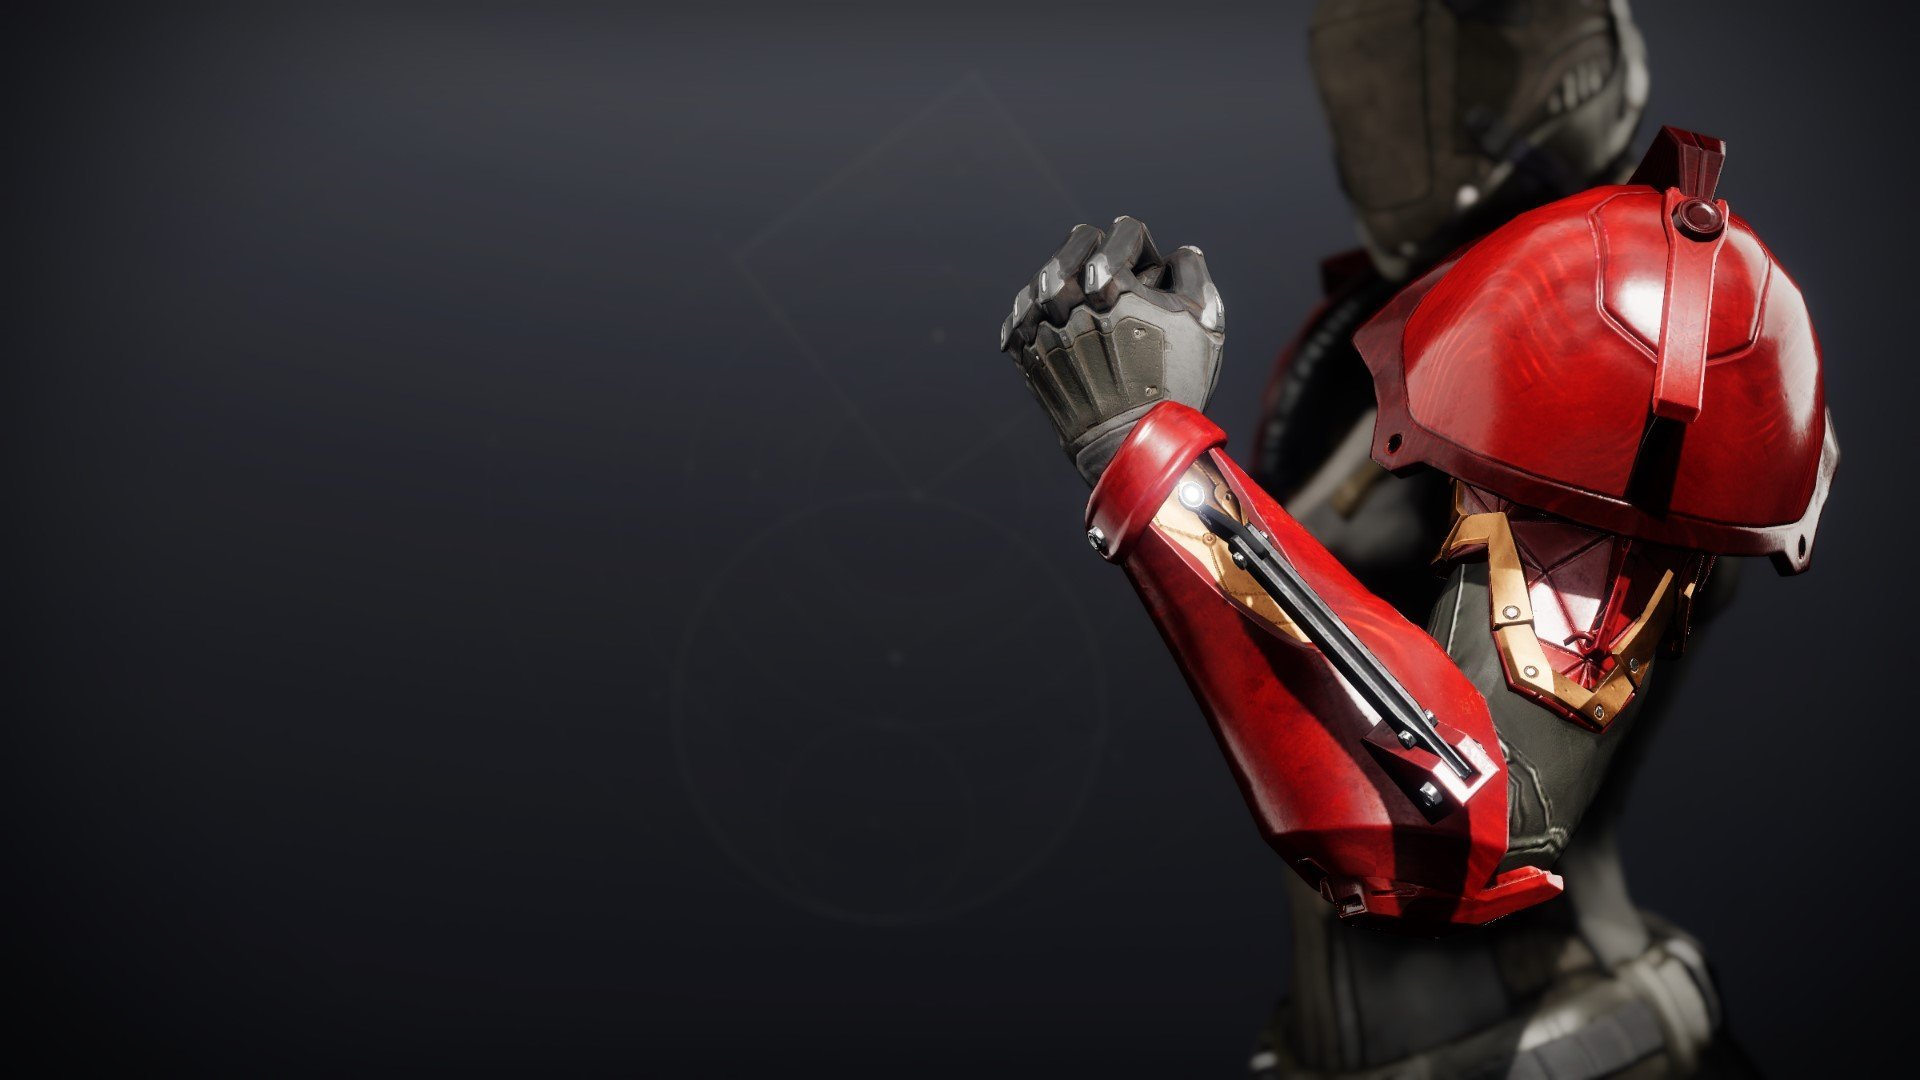 An in-game render of the Forged Machinist Gauntlets.